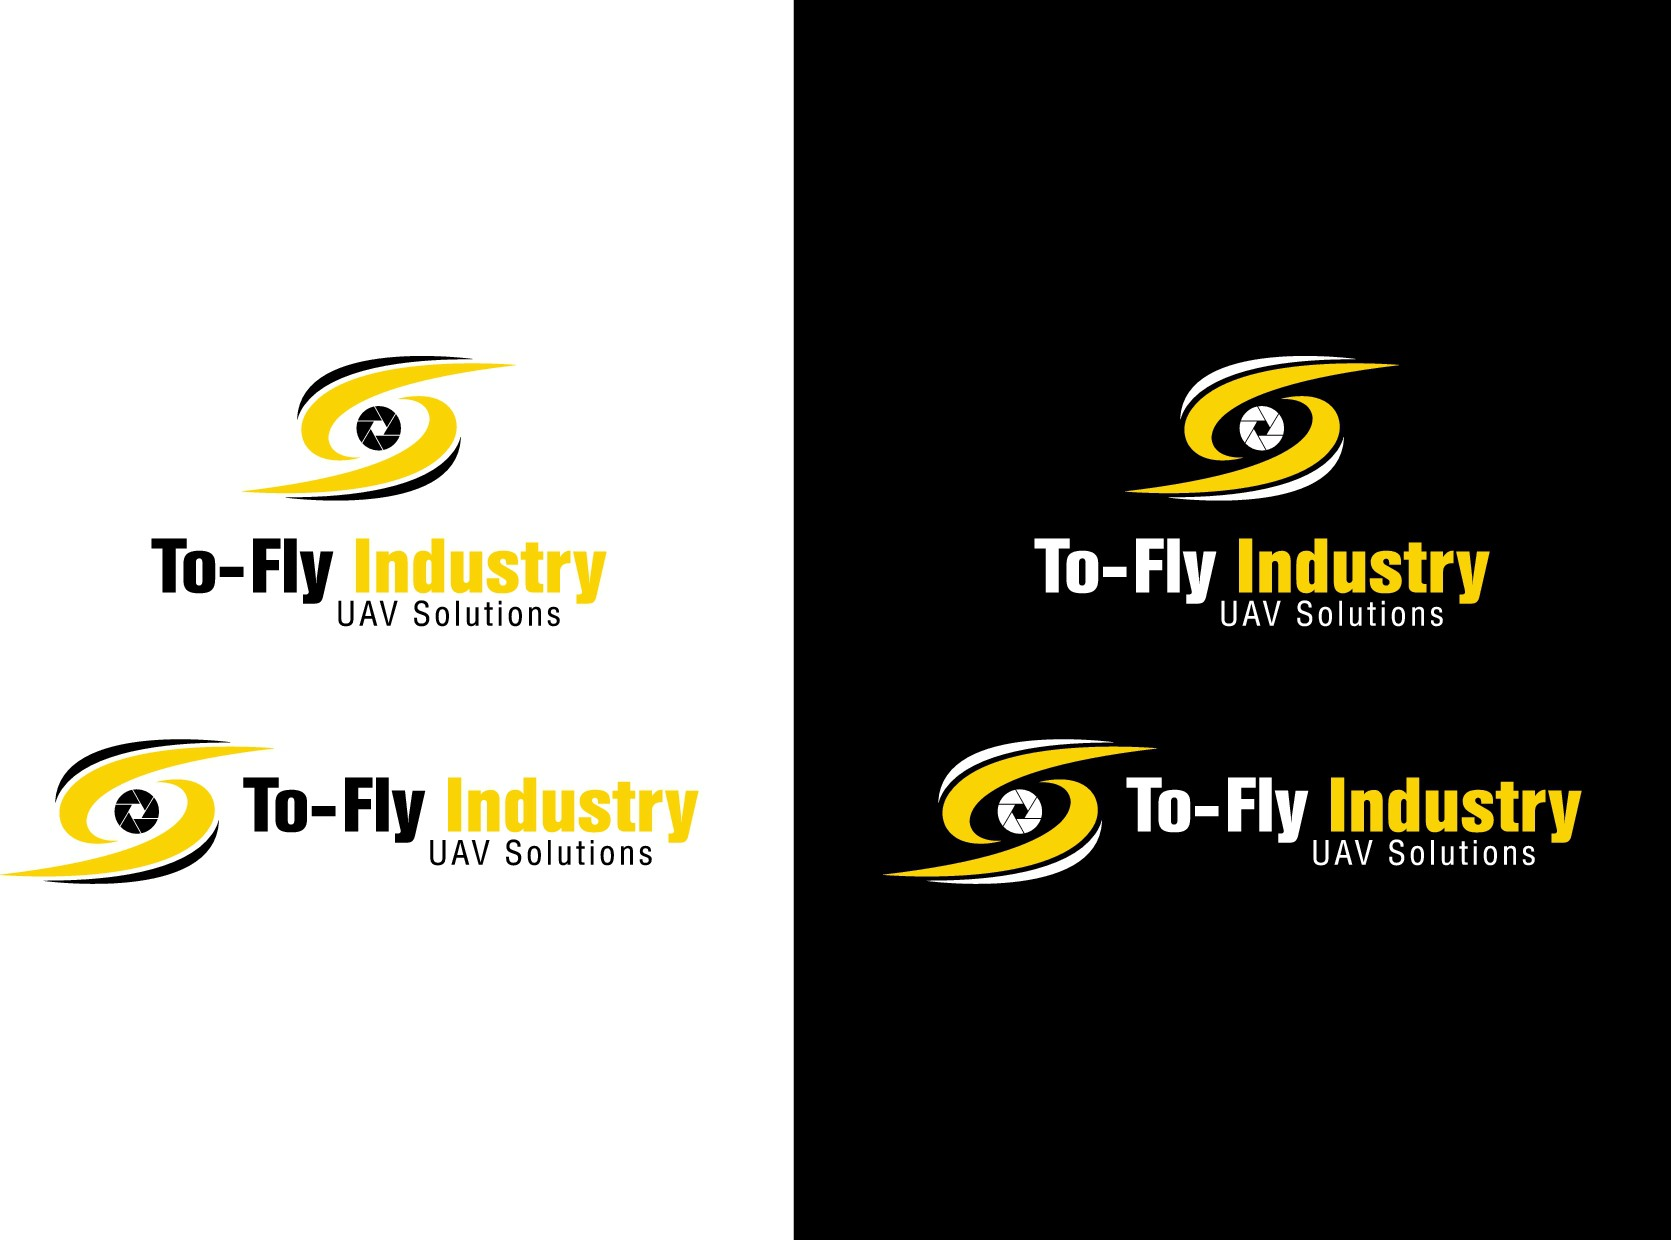 Make a logo for To-Fly Industry